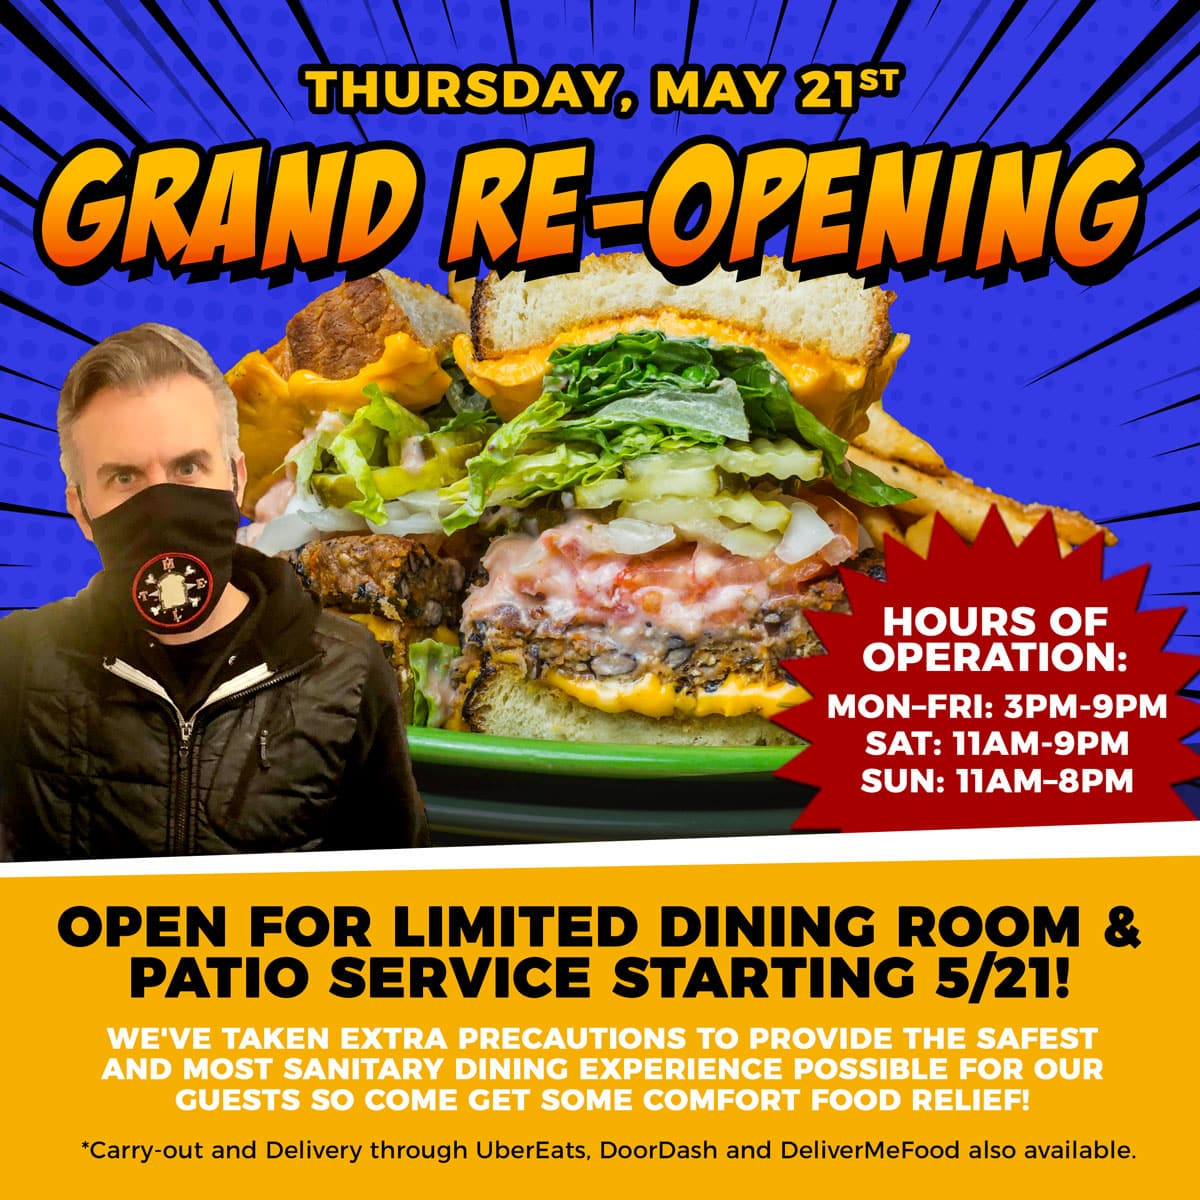 Melt Re-Opening for Dining Room and Patio Service Starting Thursday, May 21st!